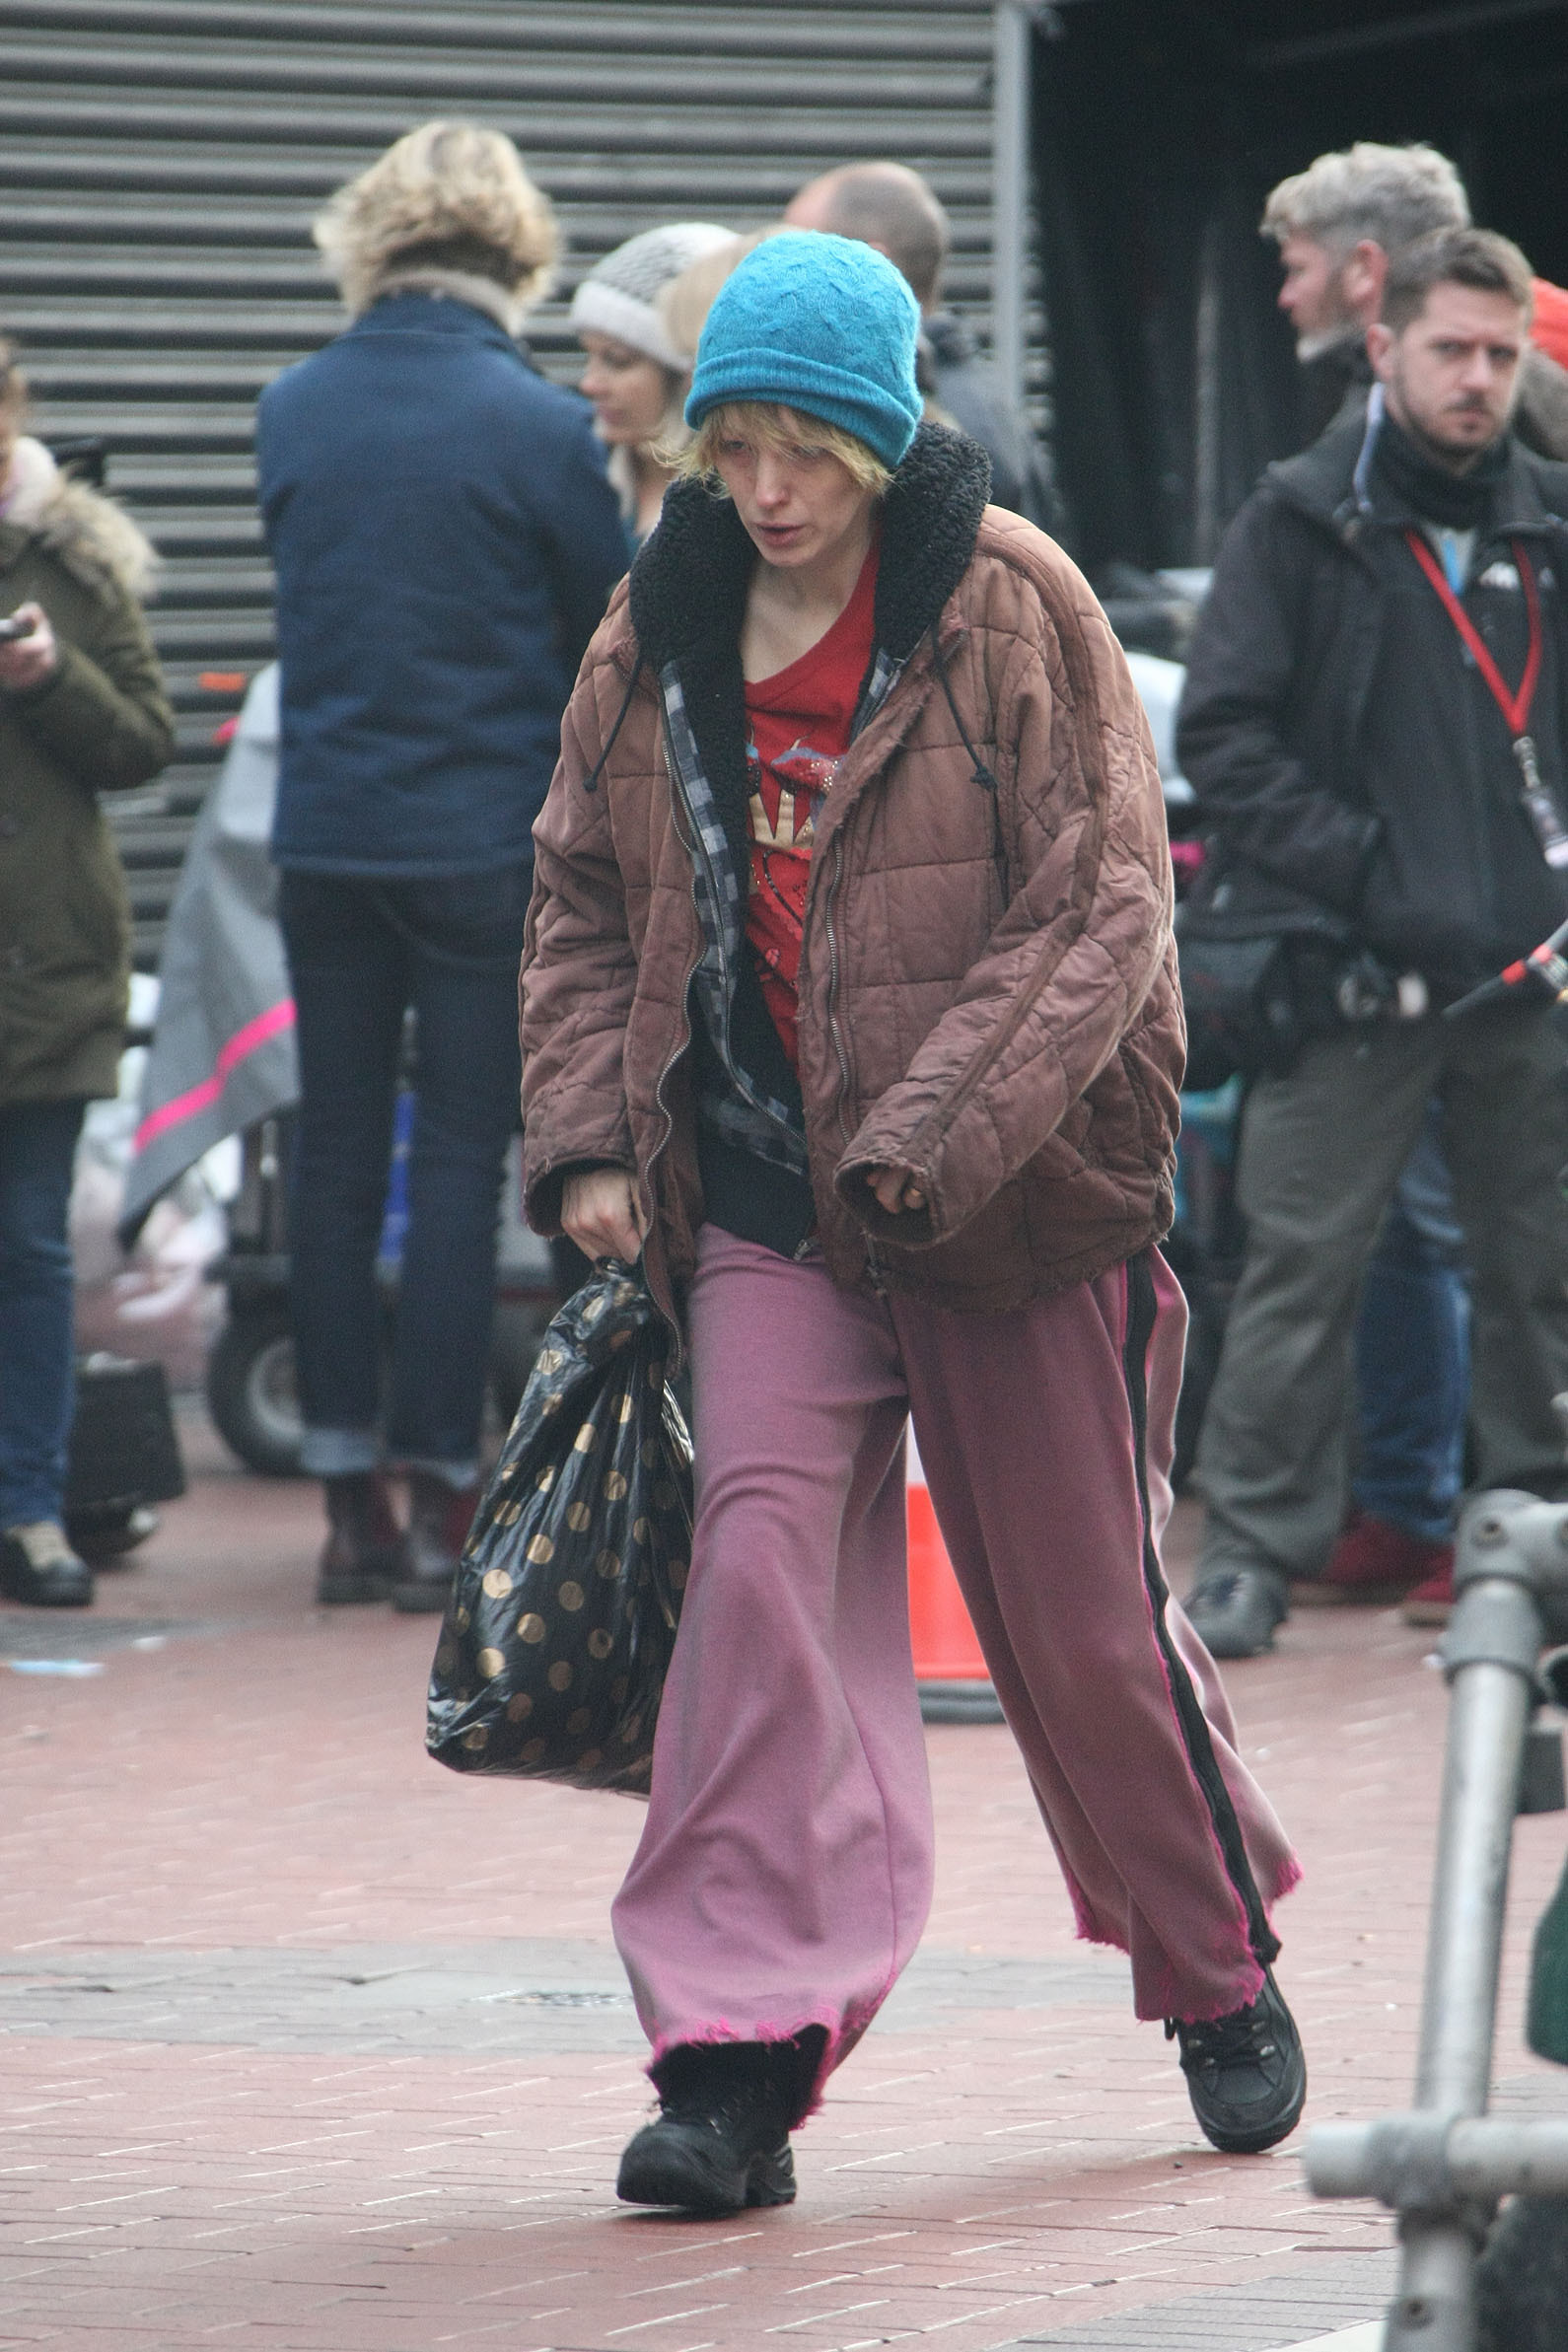 Blake Lively pictured on the film set of The Rythym Section in Dublin, Ireland, on Nov. 6, 2017.